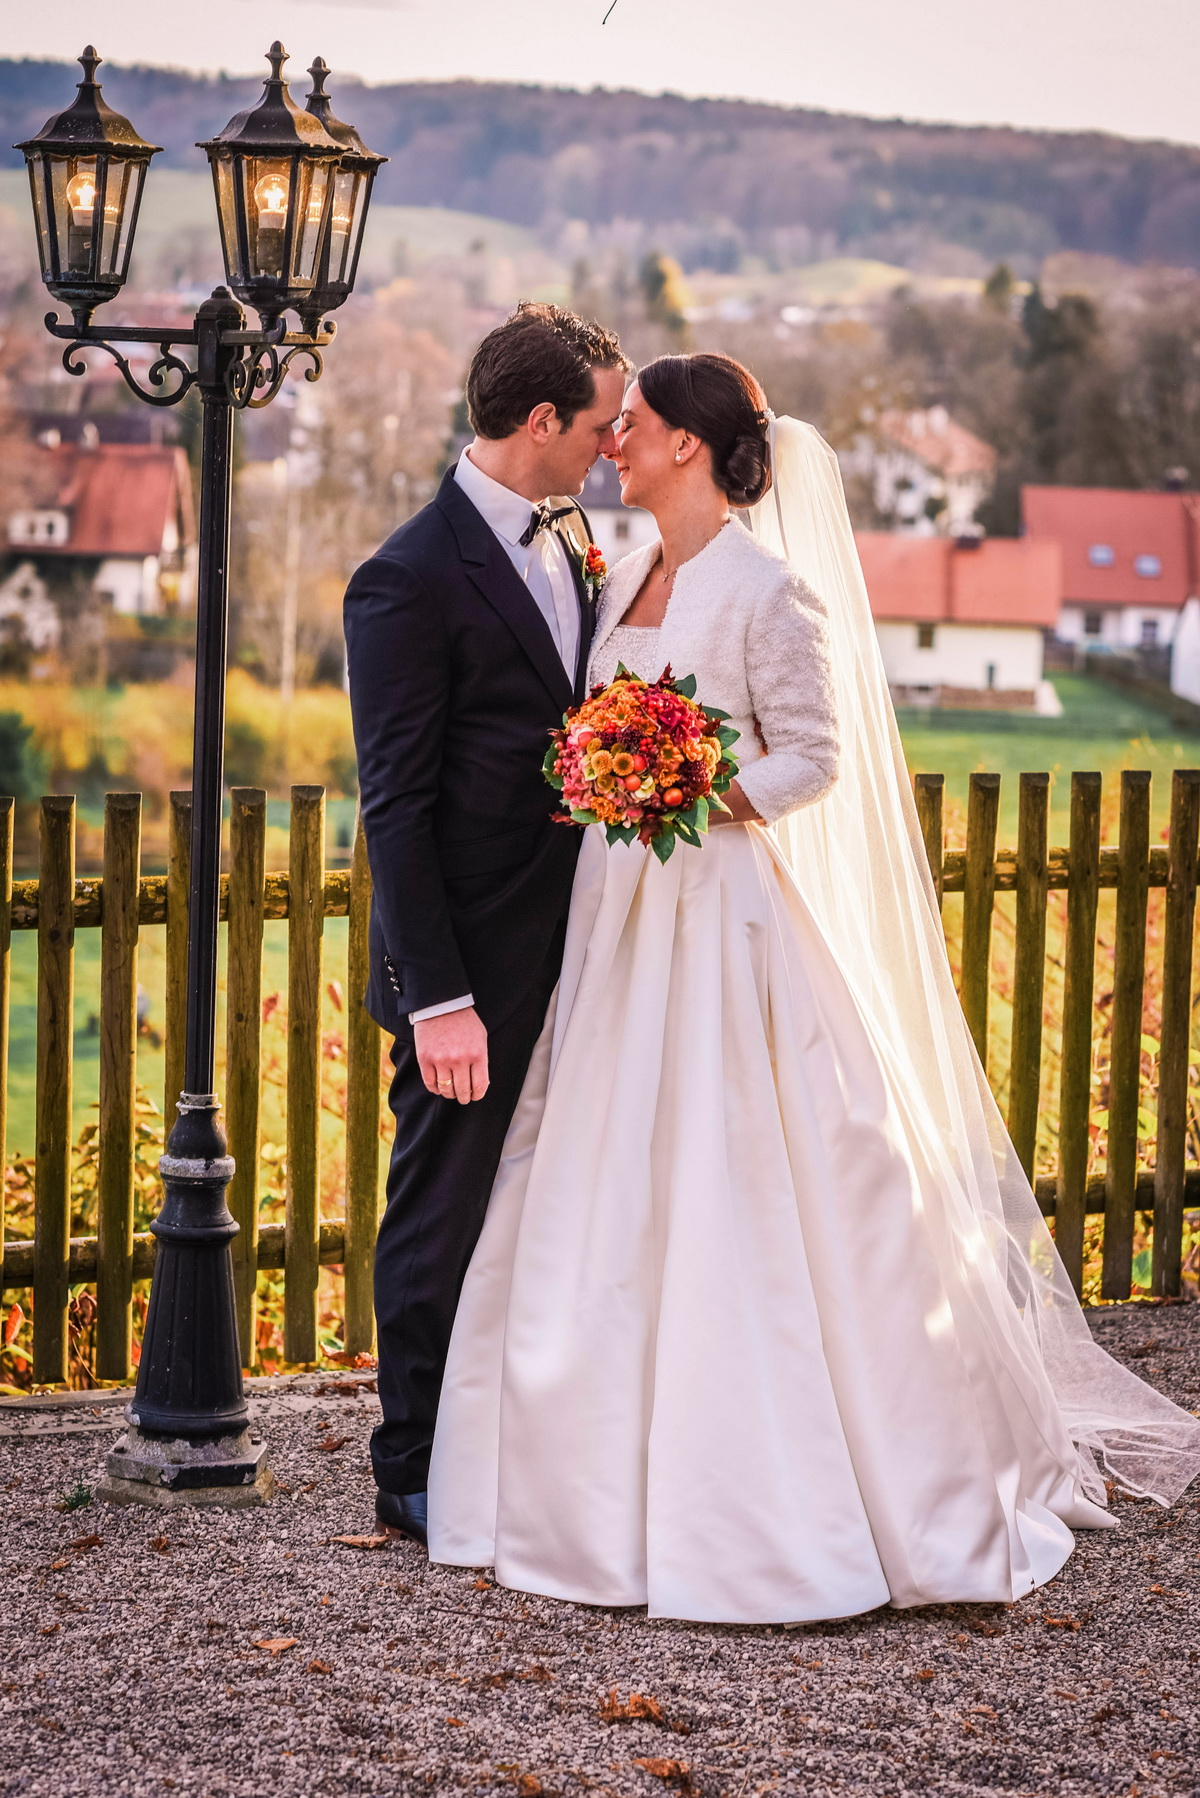 Wedding - Hochzeit - Claudia Sittig Photography - 062